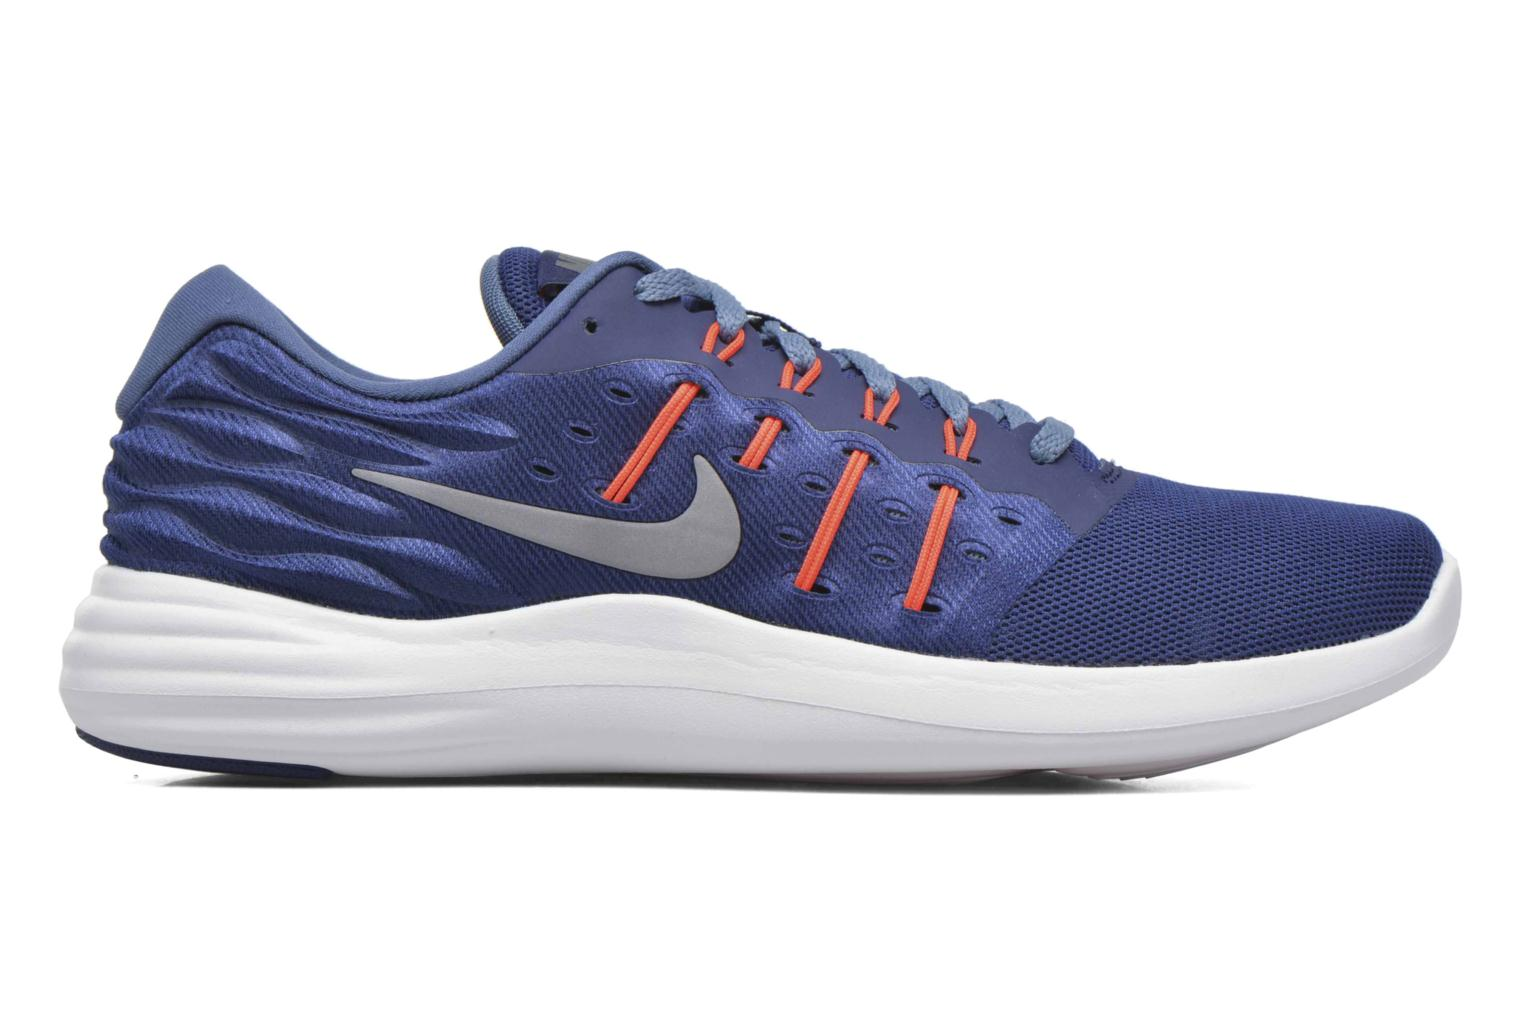 Nike Lunarstelos Loyal Blue/Mtlc Cool Grey-Ocean Fog